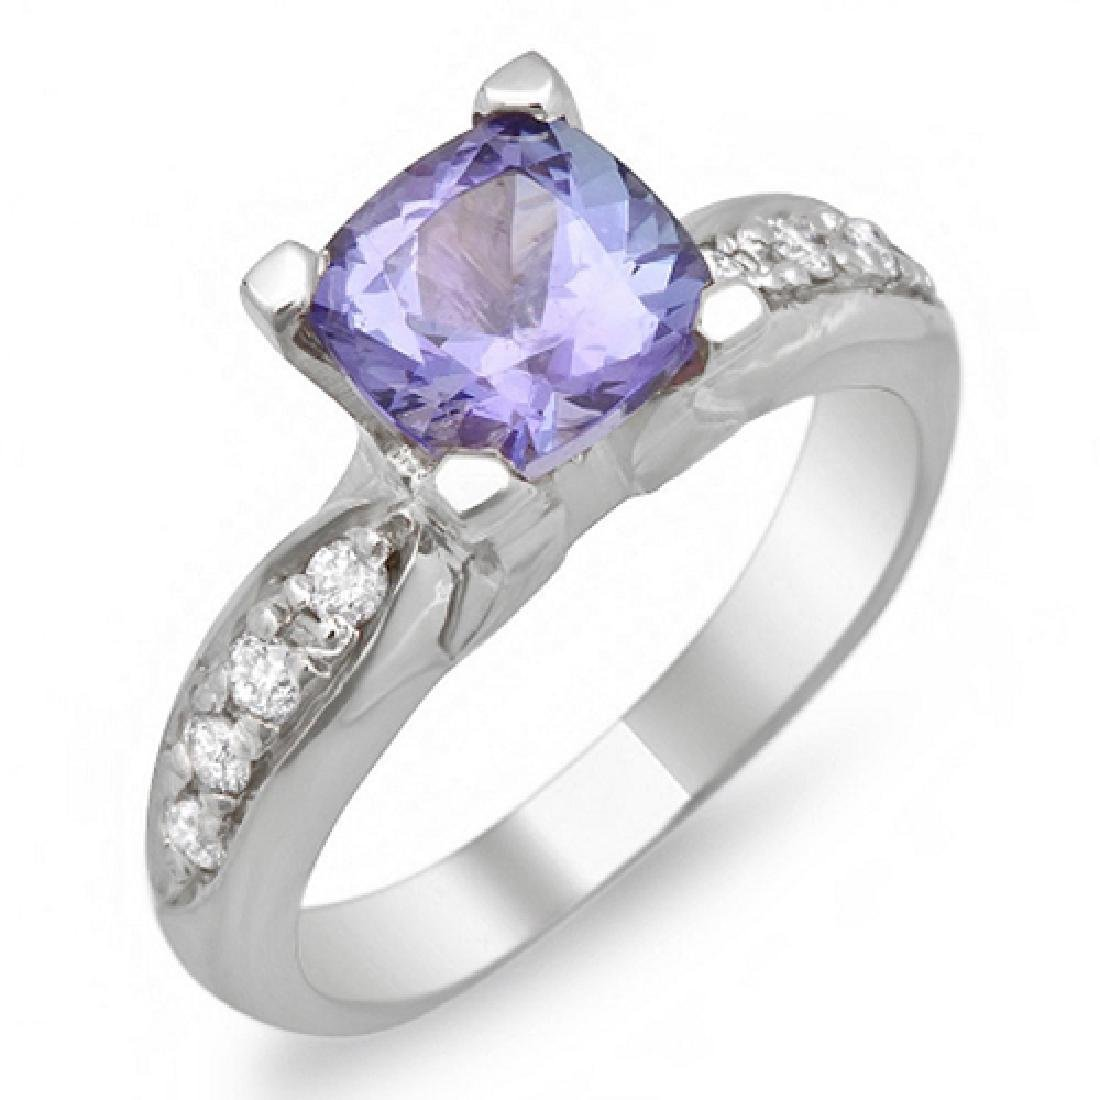 1.55 Carat Natural Tanzanite 18K Solid White Gold